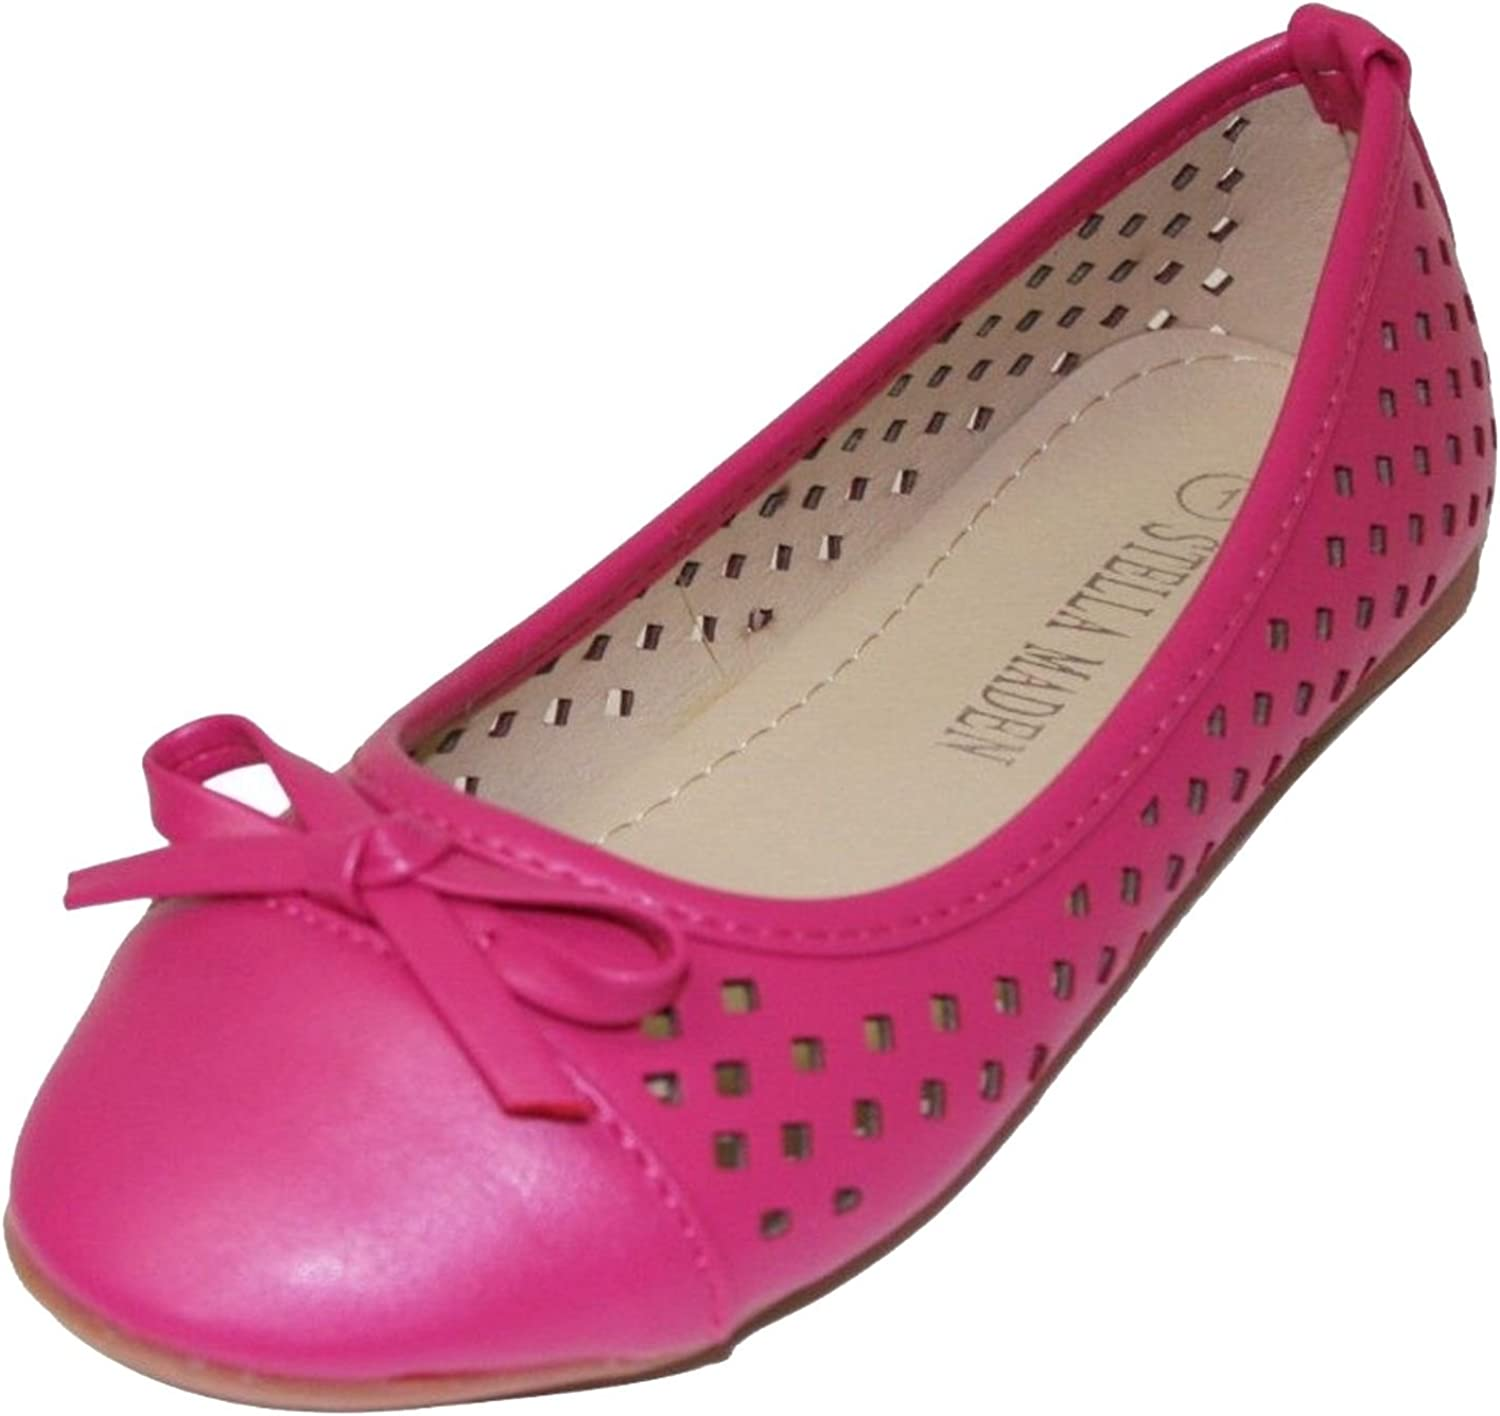 Happy Bull Fashion Walking Shoes for Max 52% OFF Max 84% OFF Comfort Kids Slip On Girls